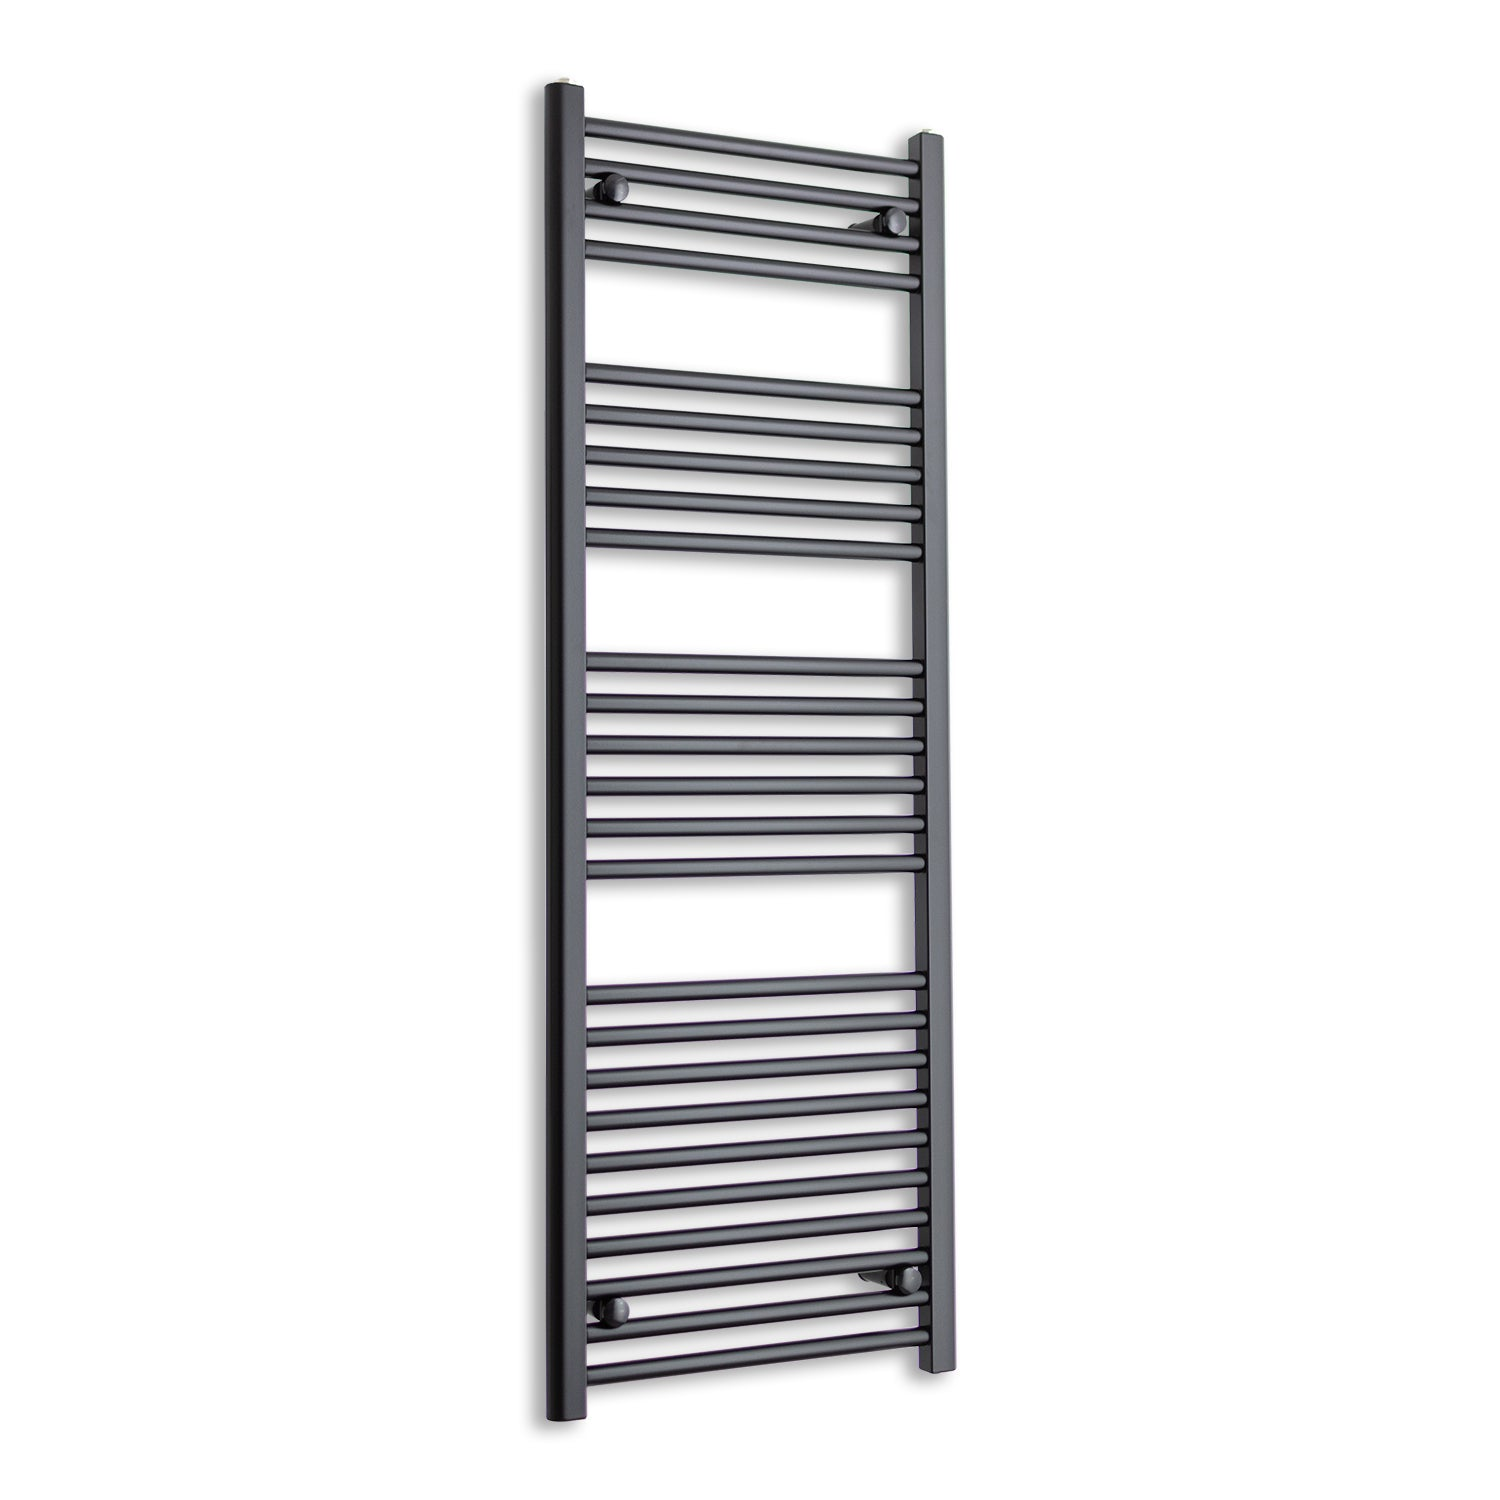 500mm Wide 1400mm High Black Towel Rail Radiator